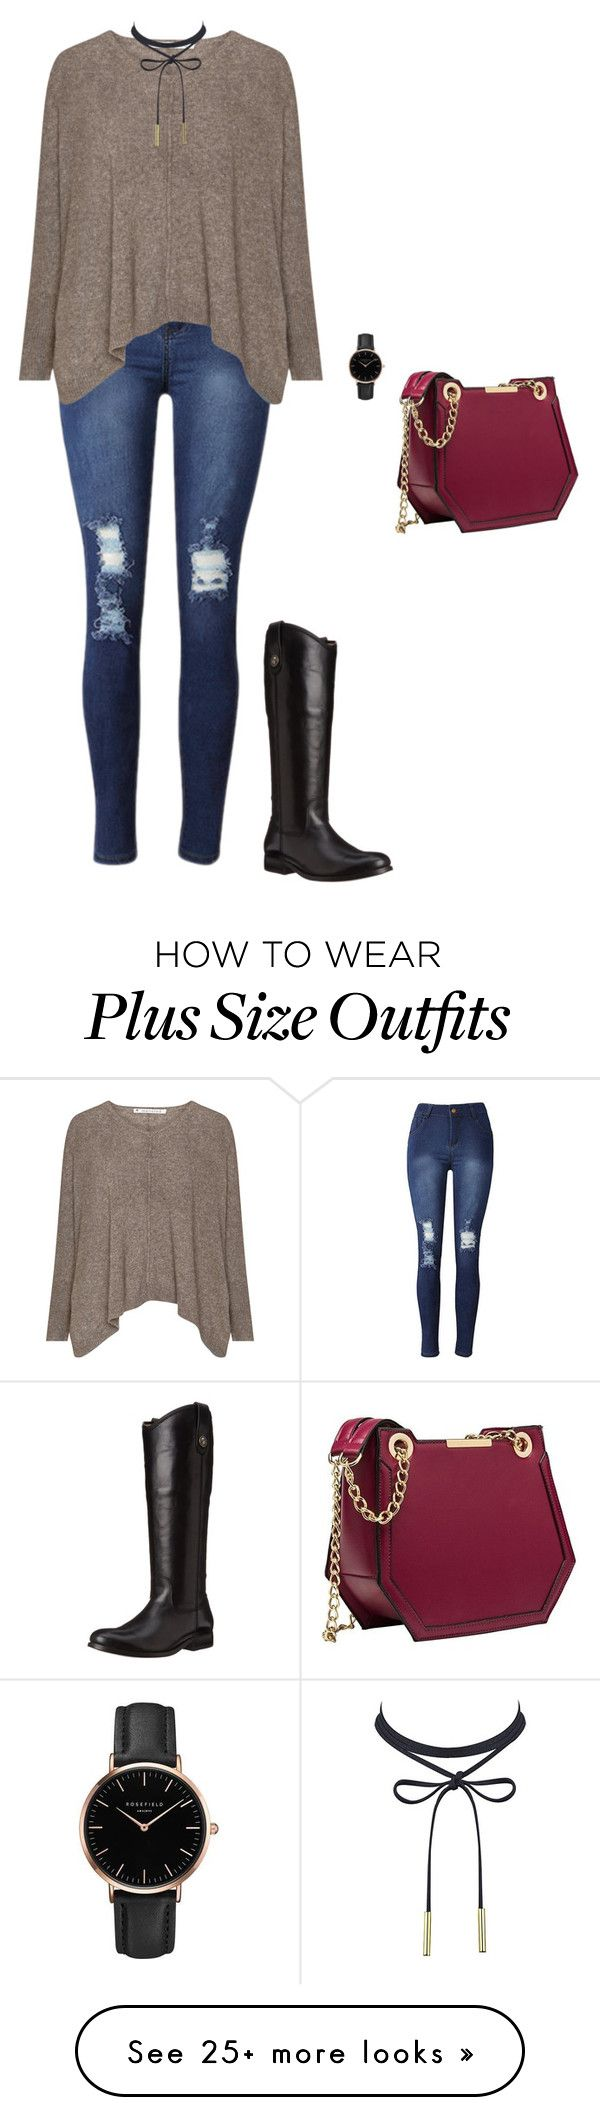 """Untitled #540"" by taylor-edmonds on Polyvore featuring Topshop and Frye"